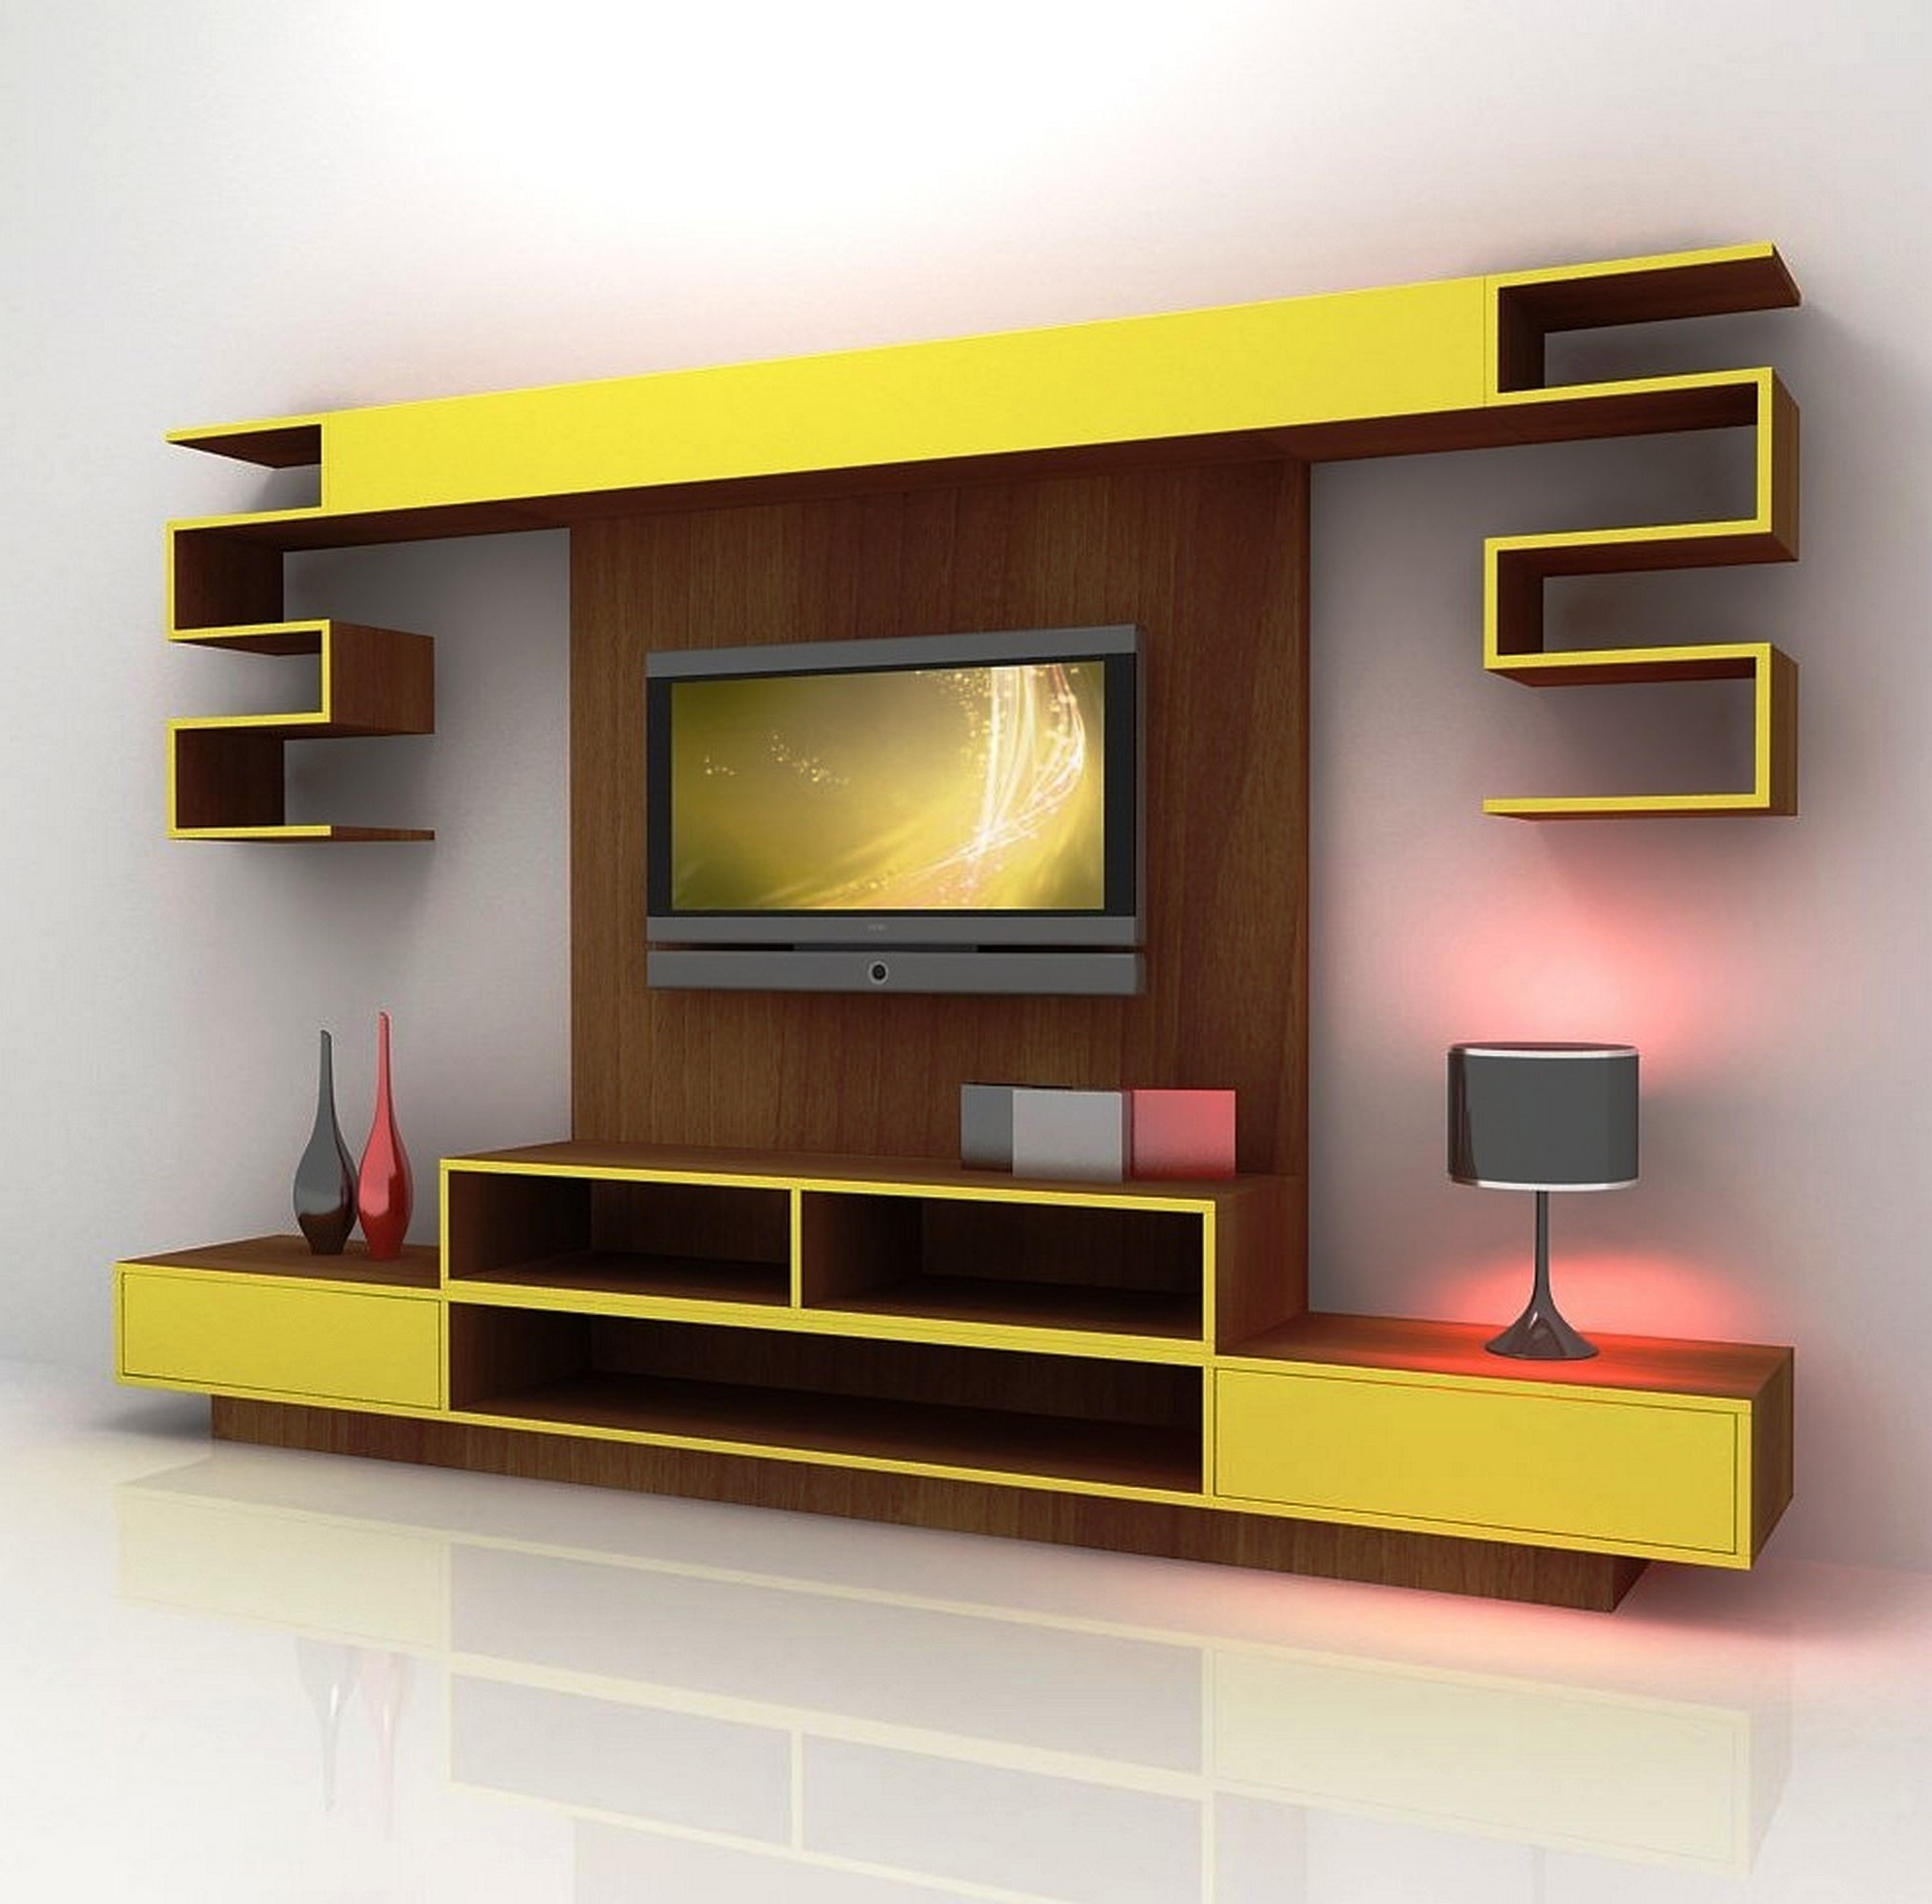 Bookcases : Tv Storage Bench Tv Stand And Bookcase Combo Colorful In Best And Newest Tv Stand Bookcases Combo (View 2 of 15)